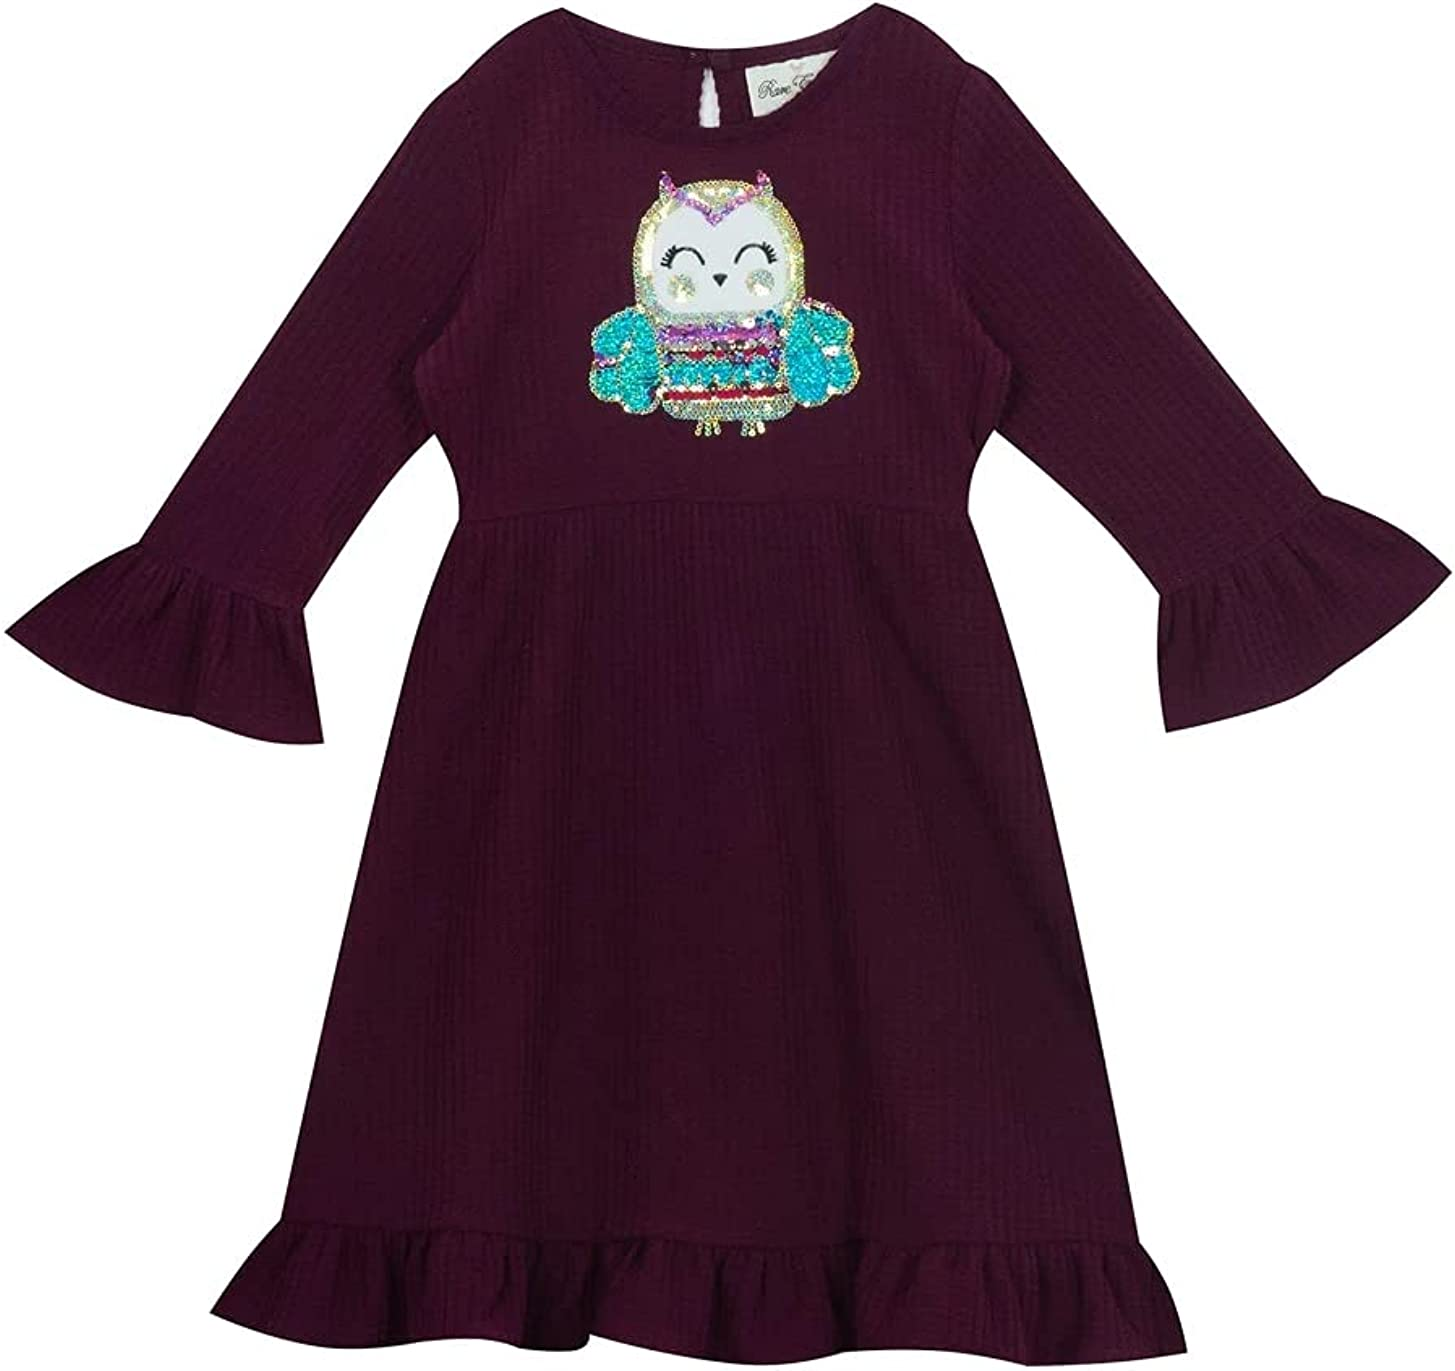 Rare Editions Eggplant / Purple Sweater Dress with Sequined Owl (2t-6x)